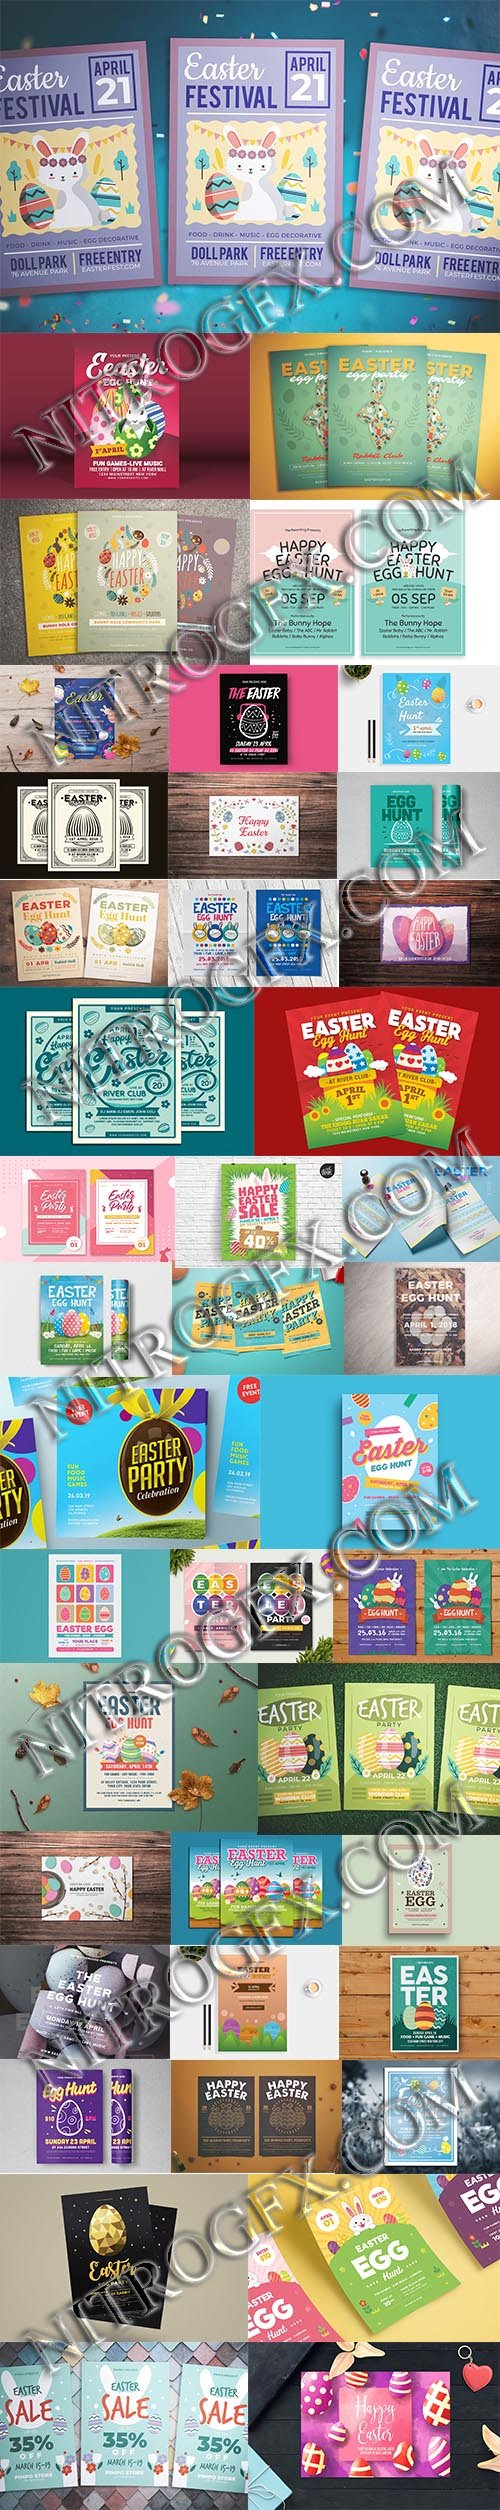 Happy Easter Big Flyers Bundle - More 41 Flyers in 1!!!